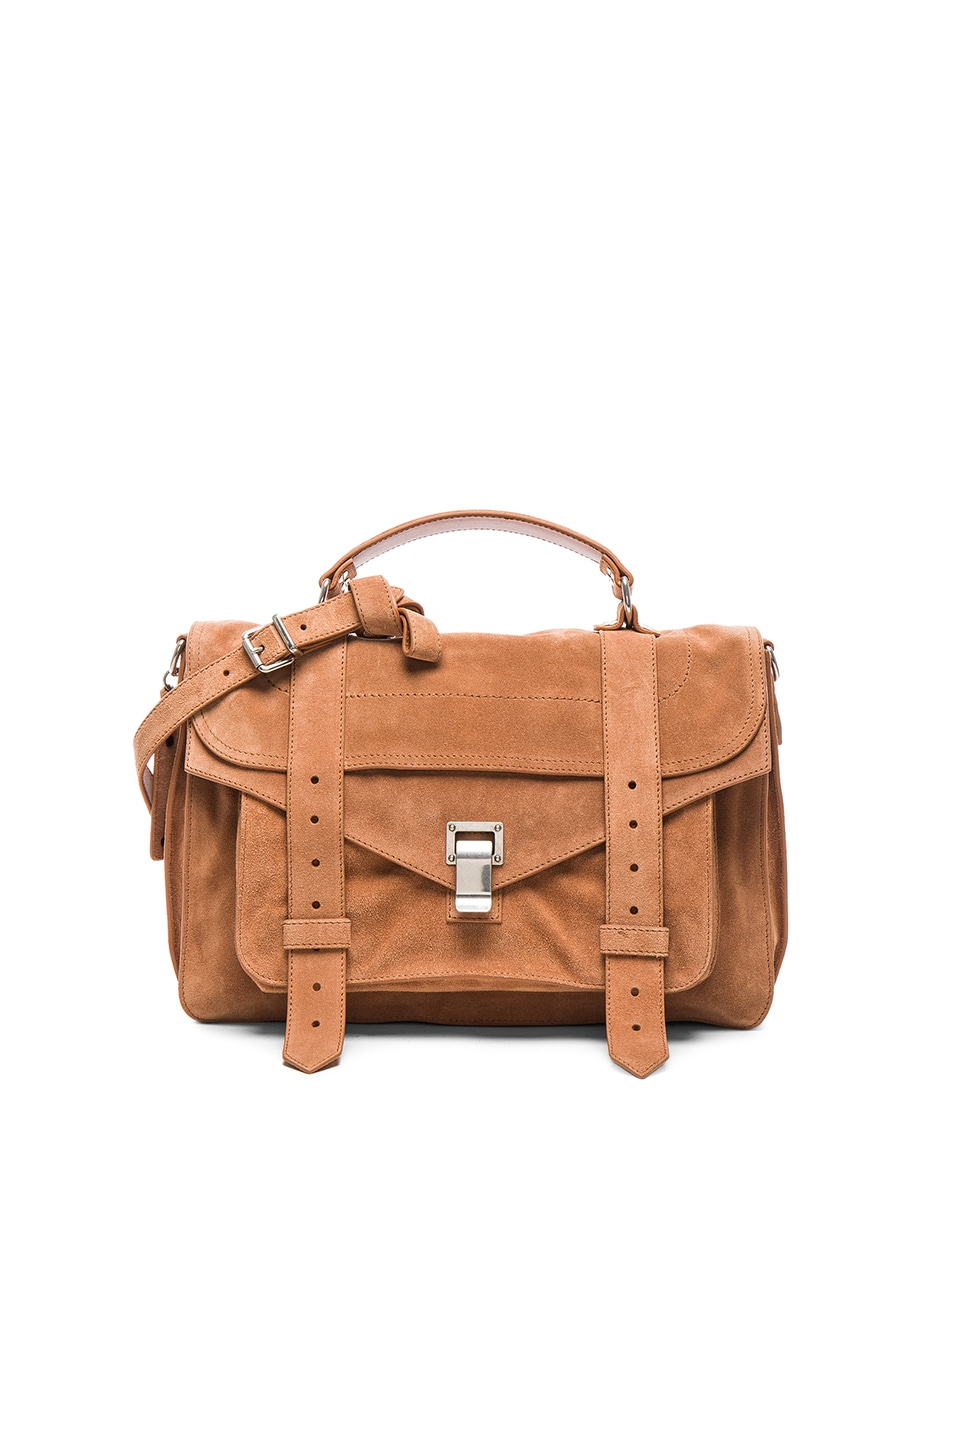 Image 1 of Proenza Schouler Medium PS1 Suede Bag in Dune